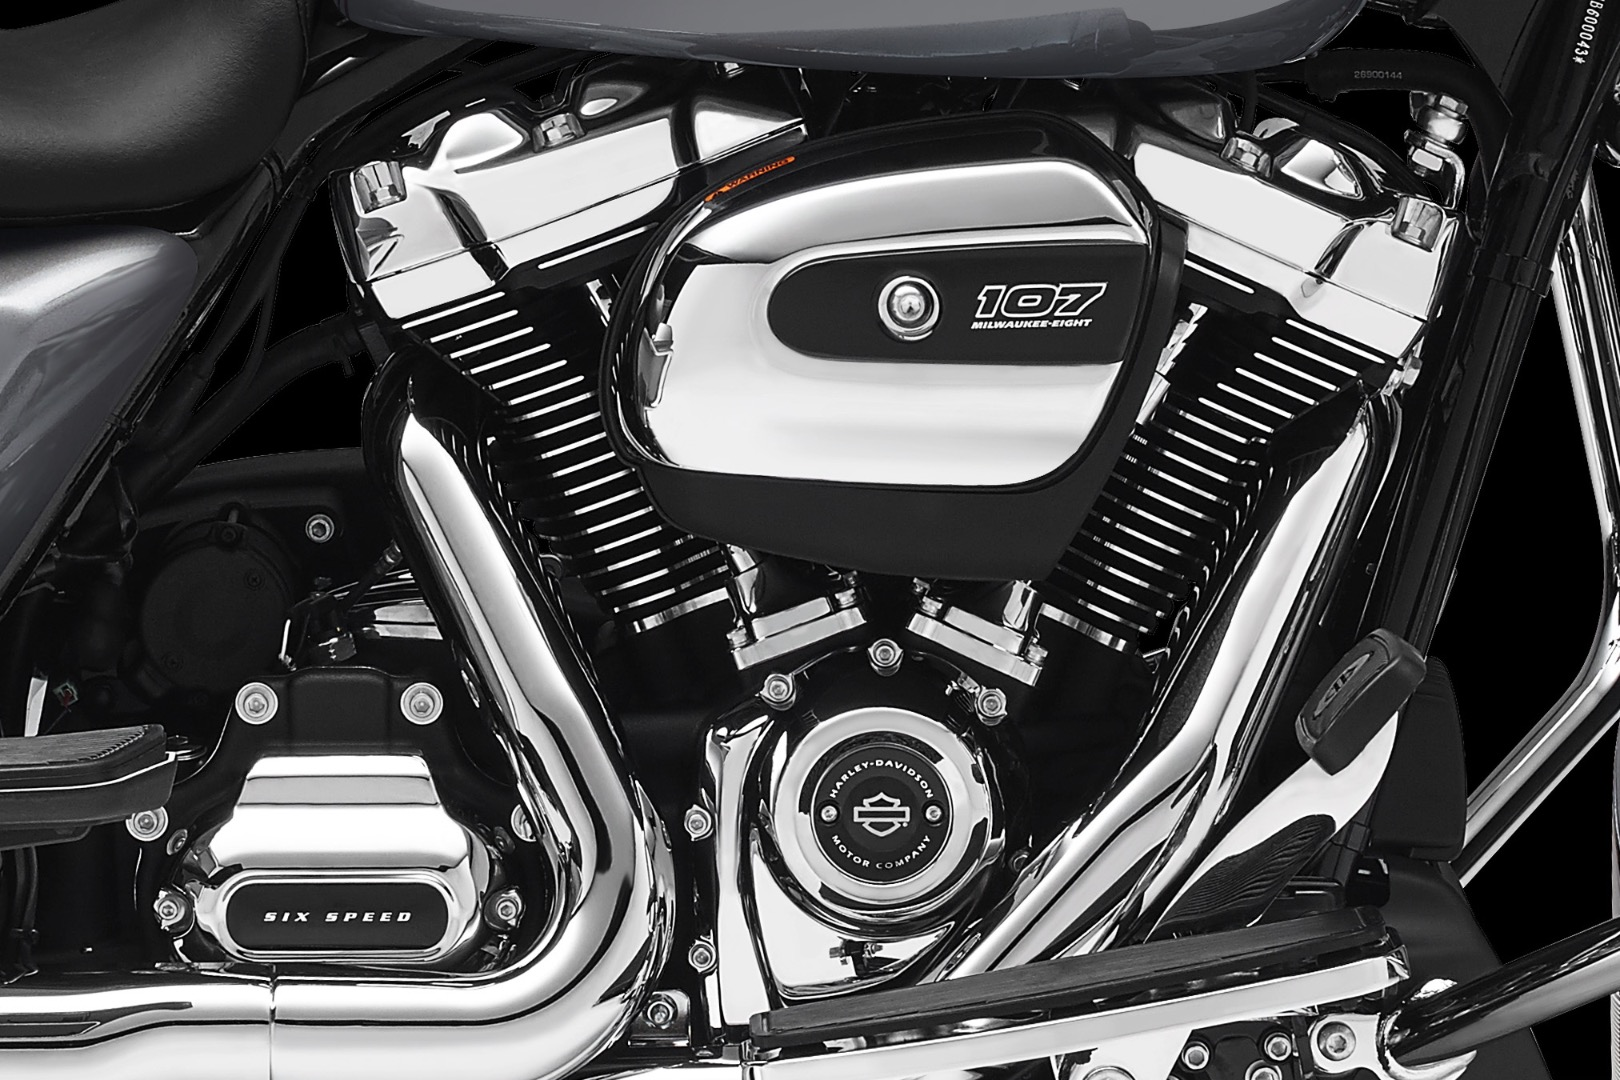 hight resolution of 2017 harley davidson milwaukee eight motor profile